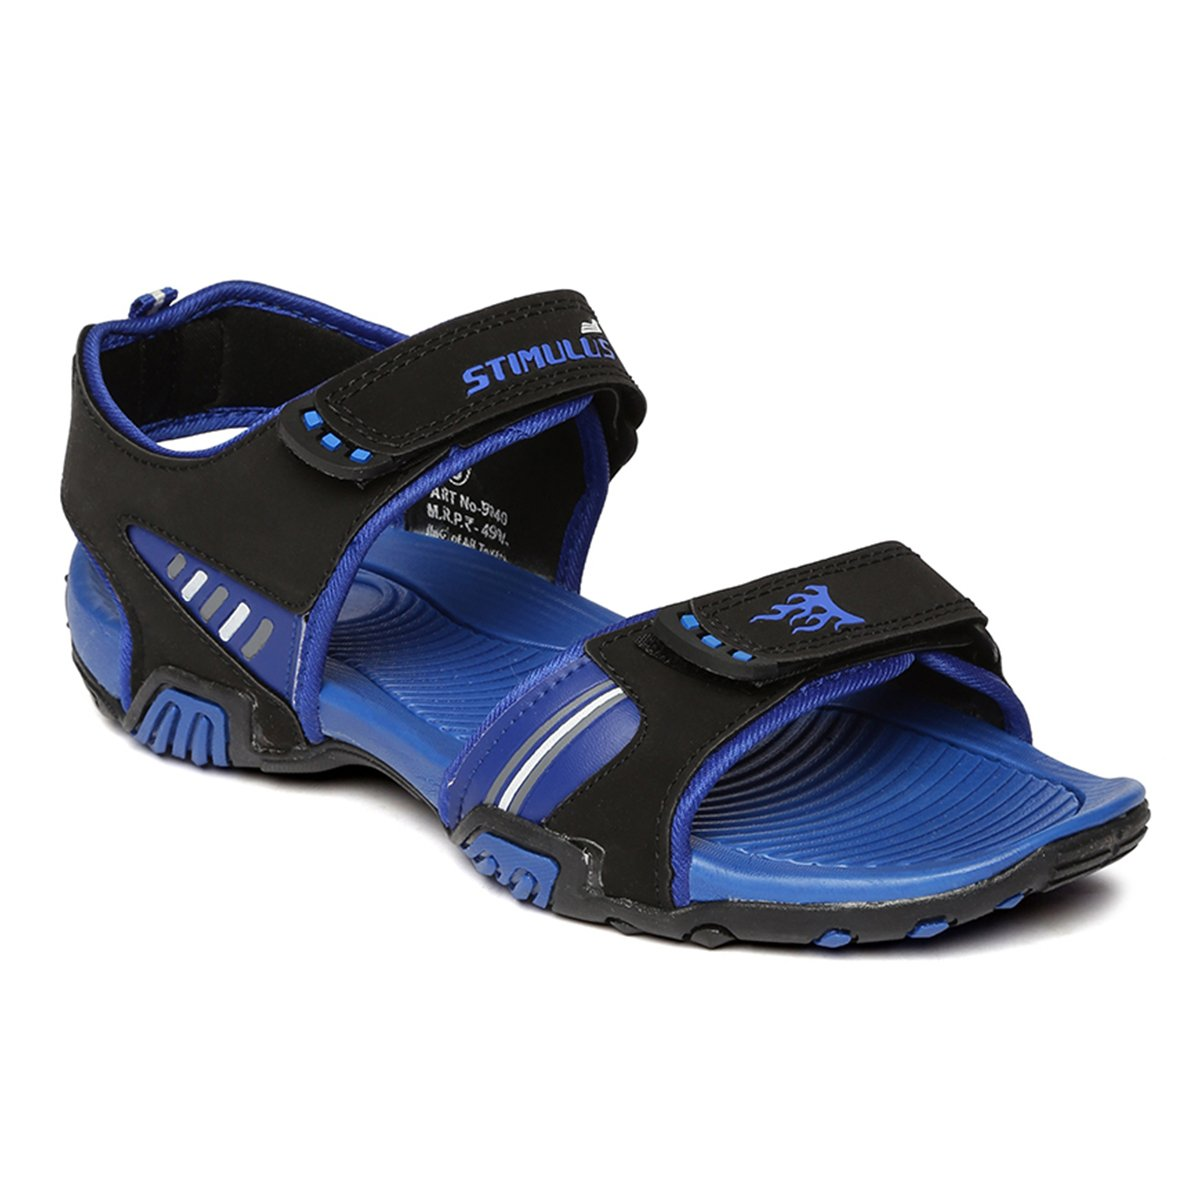 946a79f6ee71 Paragon stimulus mens blue sandals buy online at low prices in india jpg  1200x1200 Blue sandals